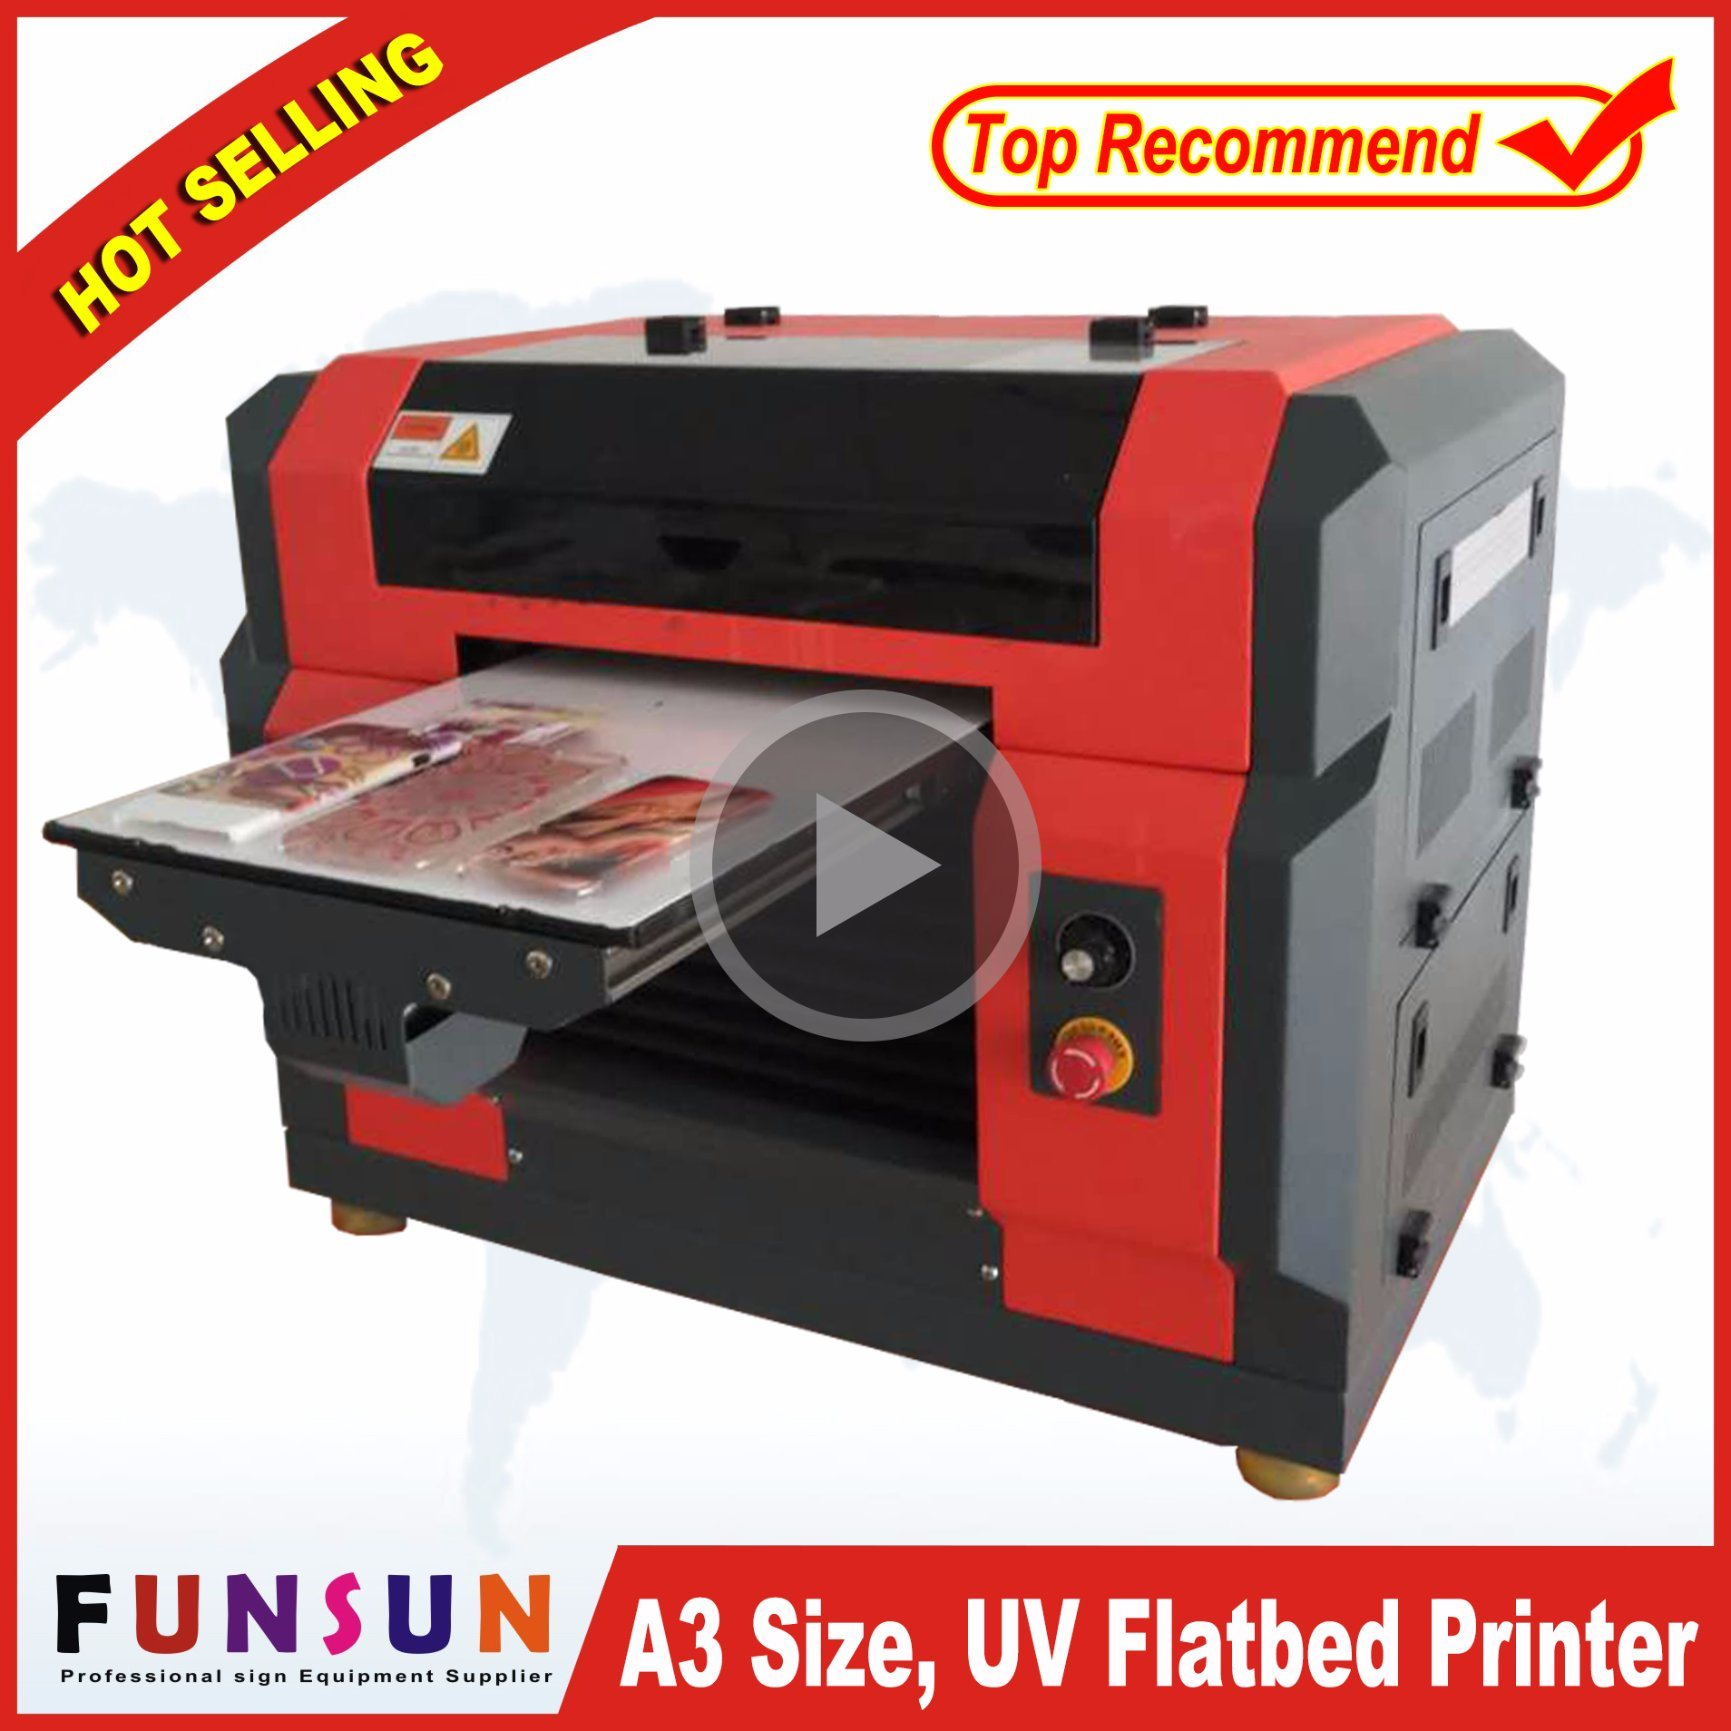 Business card printing equipment images card design and card template famous business card printing machine ideas business card ideas china funsunjet a3 uv digital business card reheart Gallery